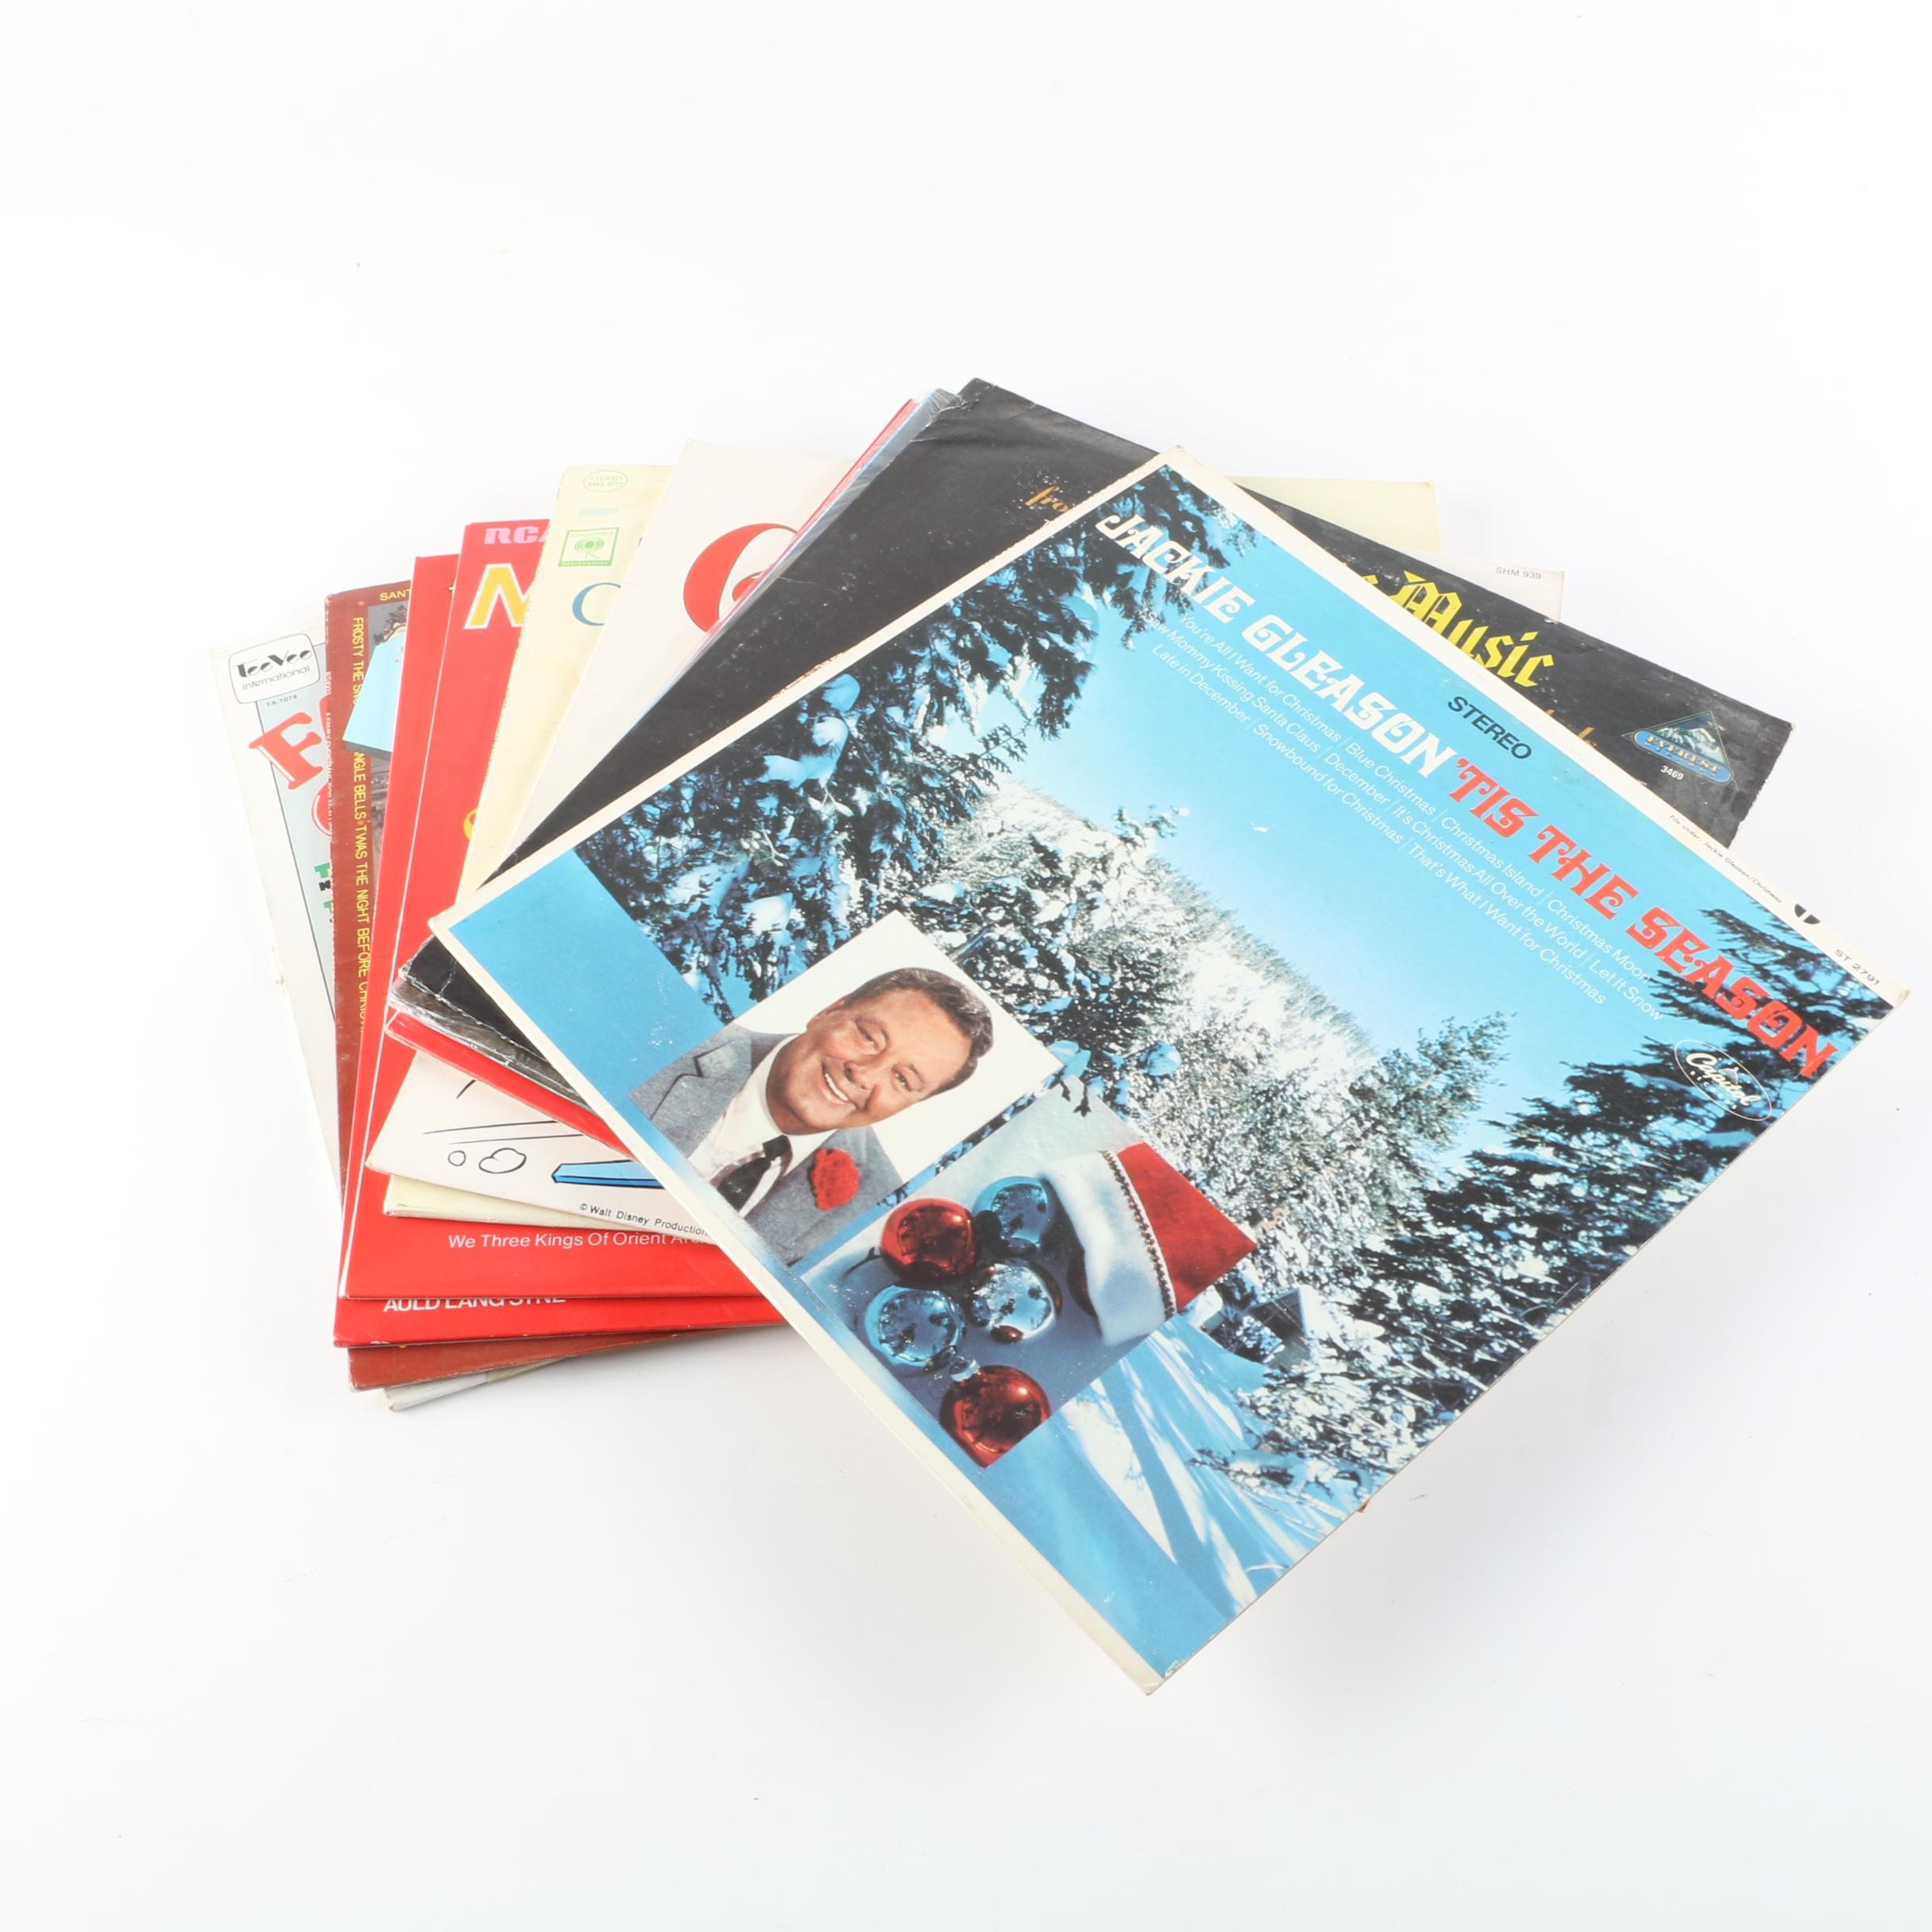 Christmas Records Including Jim Reeves, Charley Pride, Walt Disney, and More